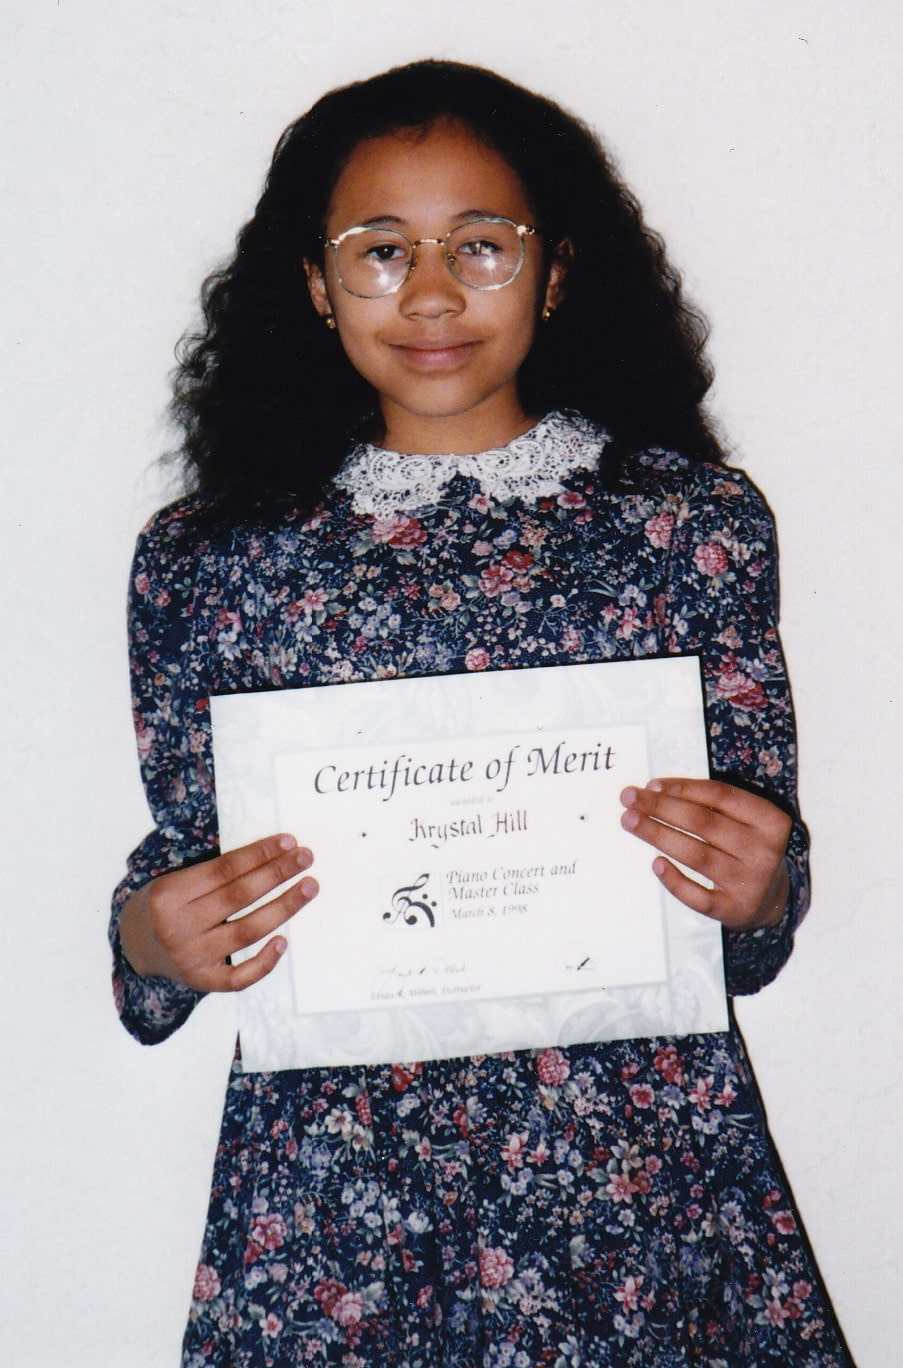 Krystal Hill with her Piano Certificate of Merit